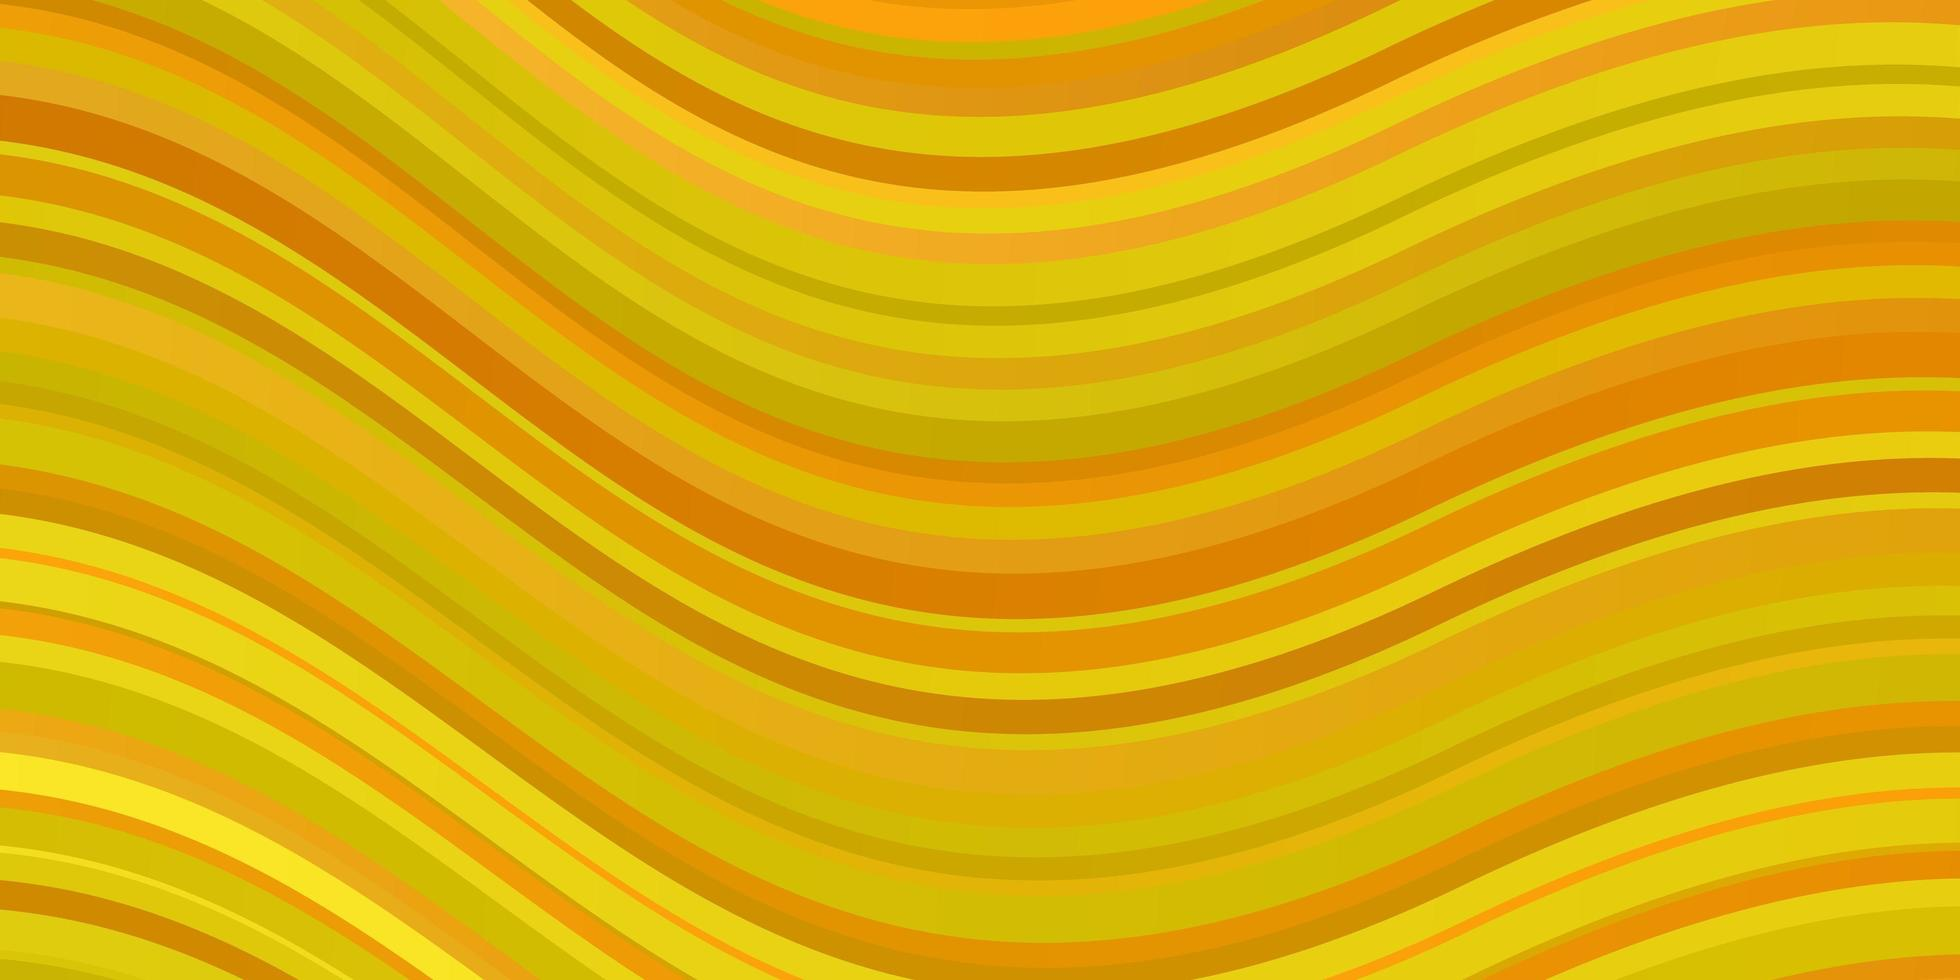 Light Yellow vector template with wry lines.